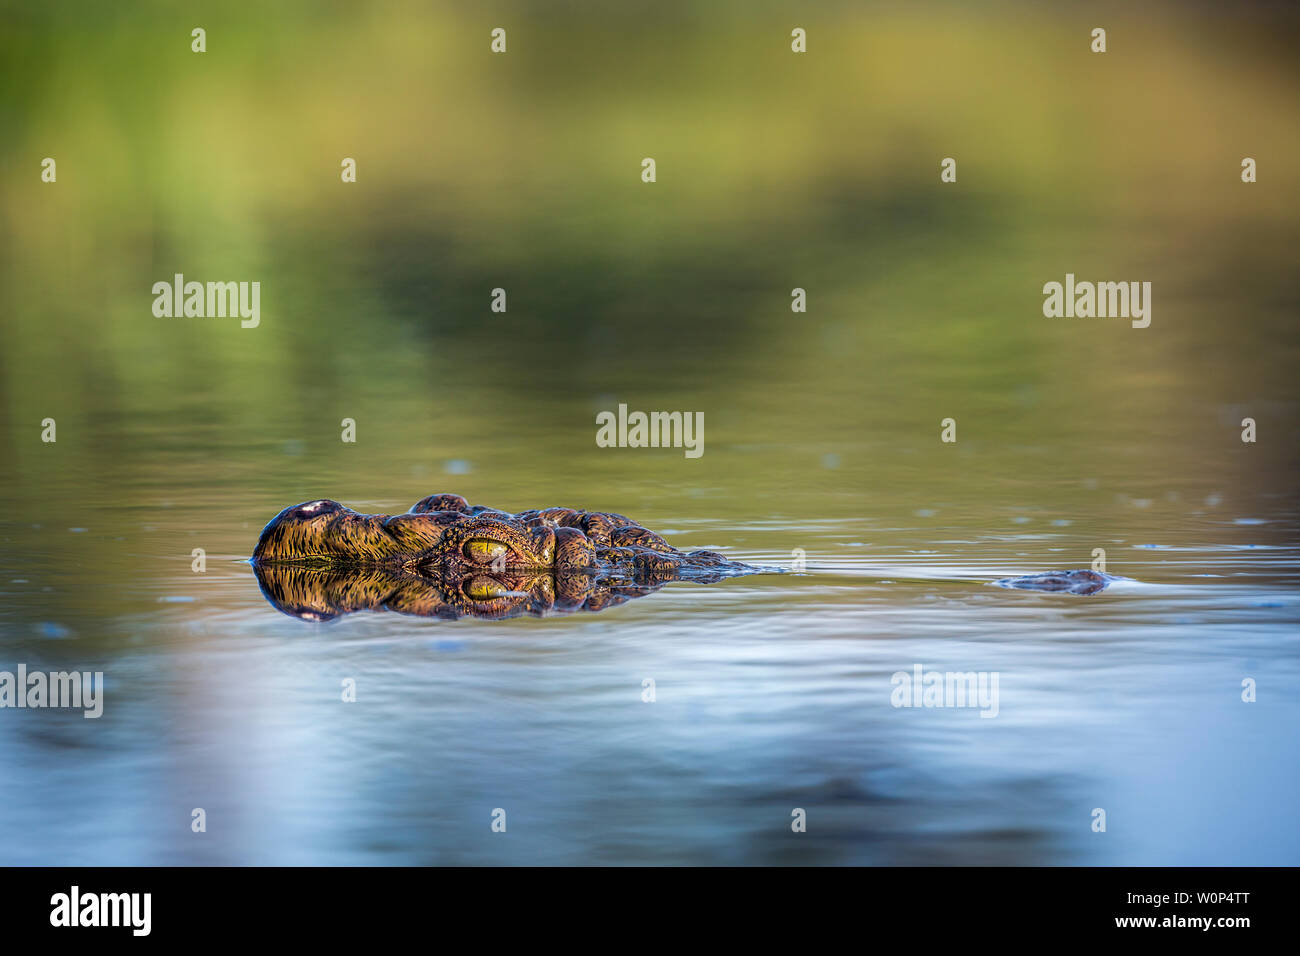 Nile crocodile portrait in surface level in Kruger National park, South Africa ; Specie Crocodylus niloticus family of Crocodylidae - Stock Photo